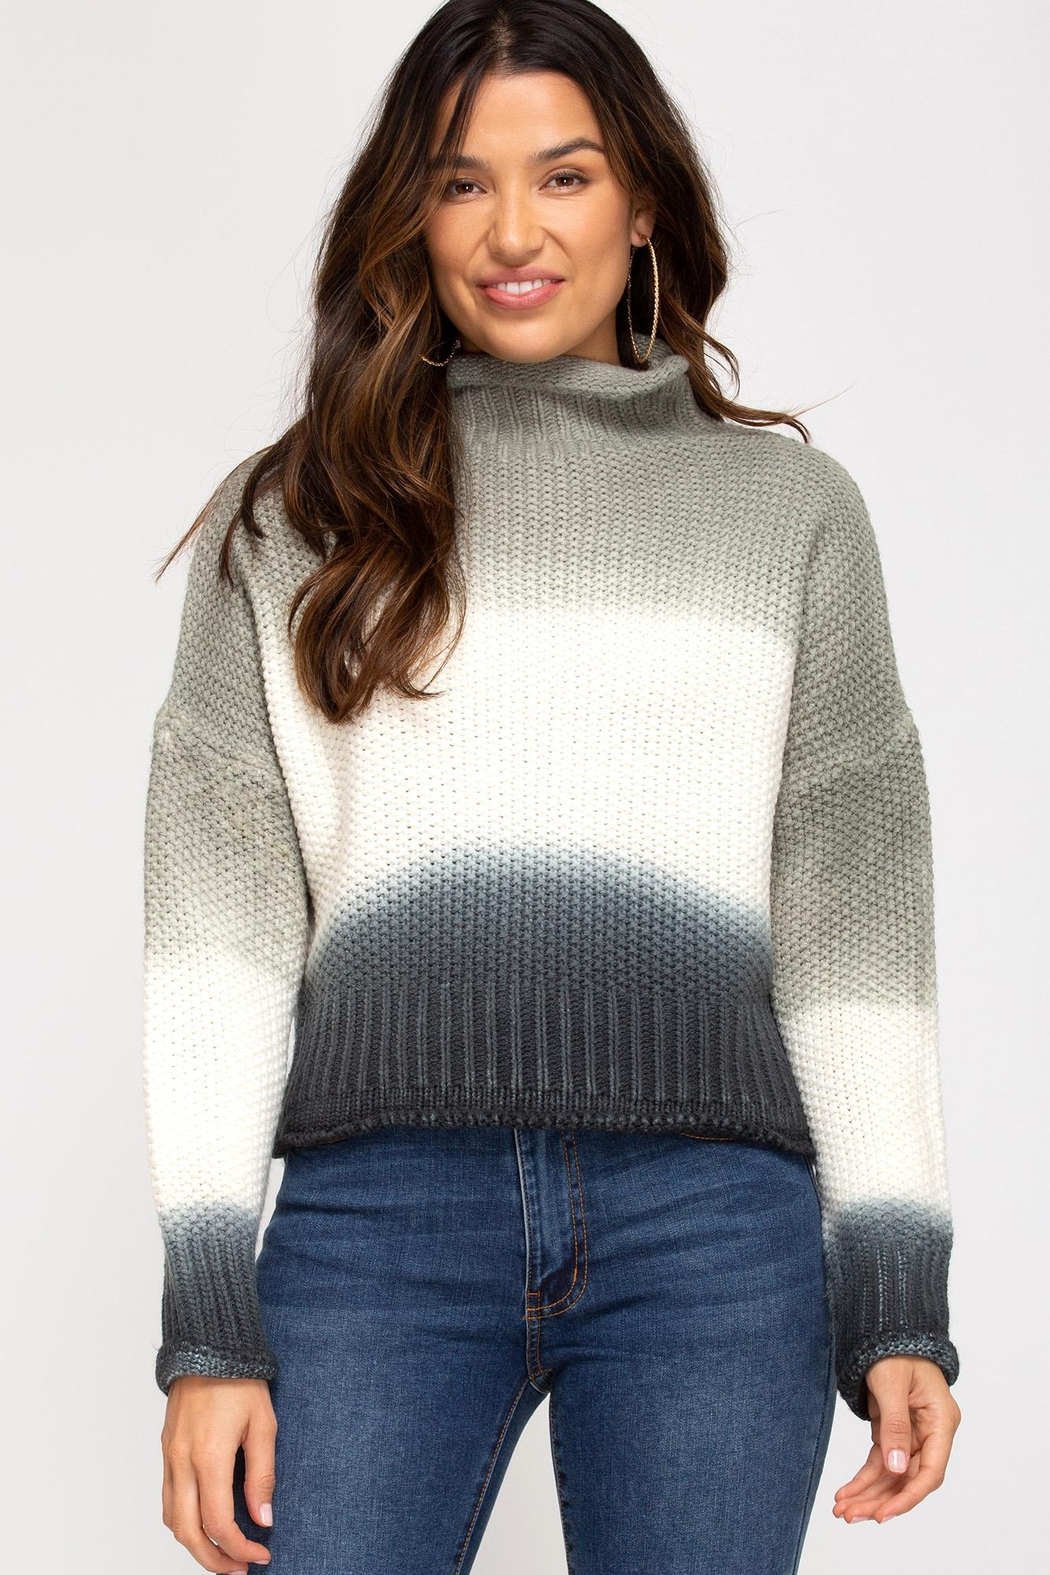 She + Sky Hi-Neck Dip-Dyed Sweater - Front Cropped Image